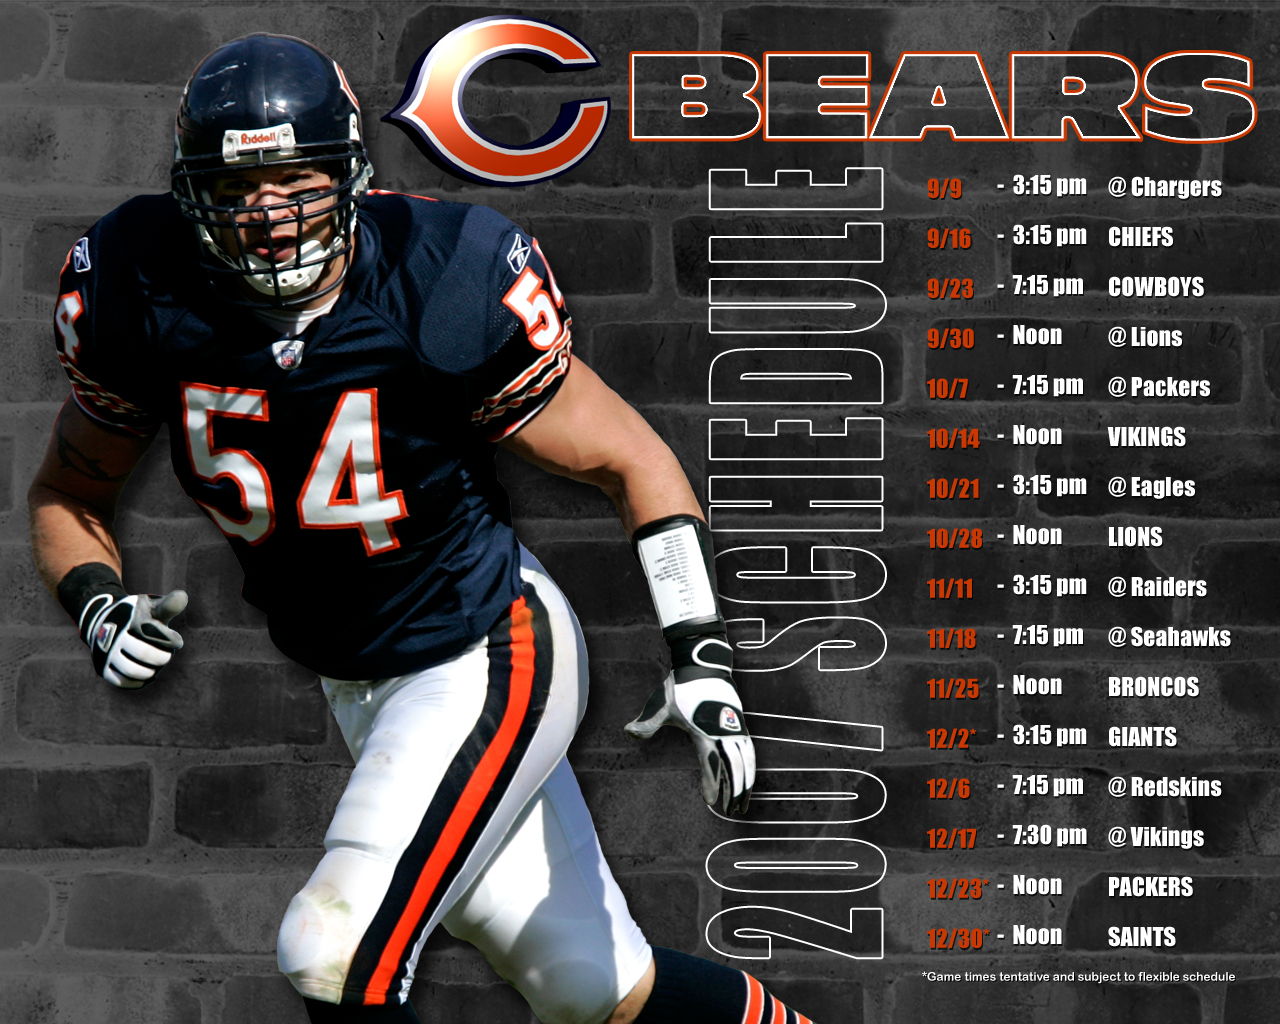 Chicago Bears wallpaper HD desktop wallpaper Chicago Bears 1280x1024